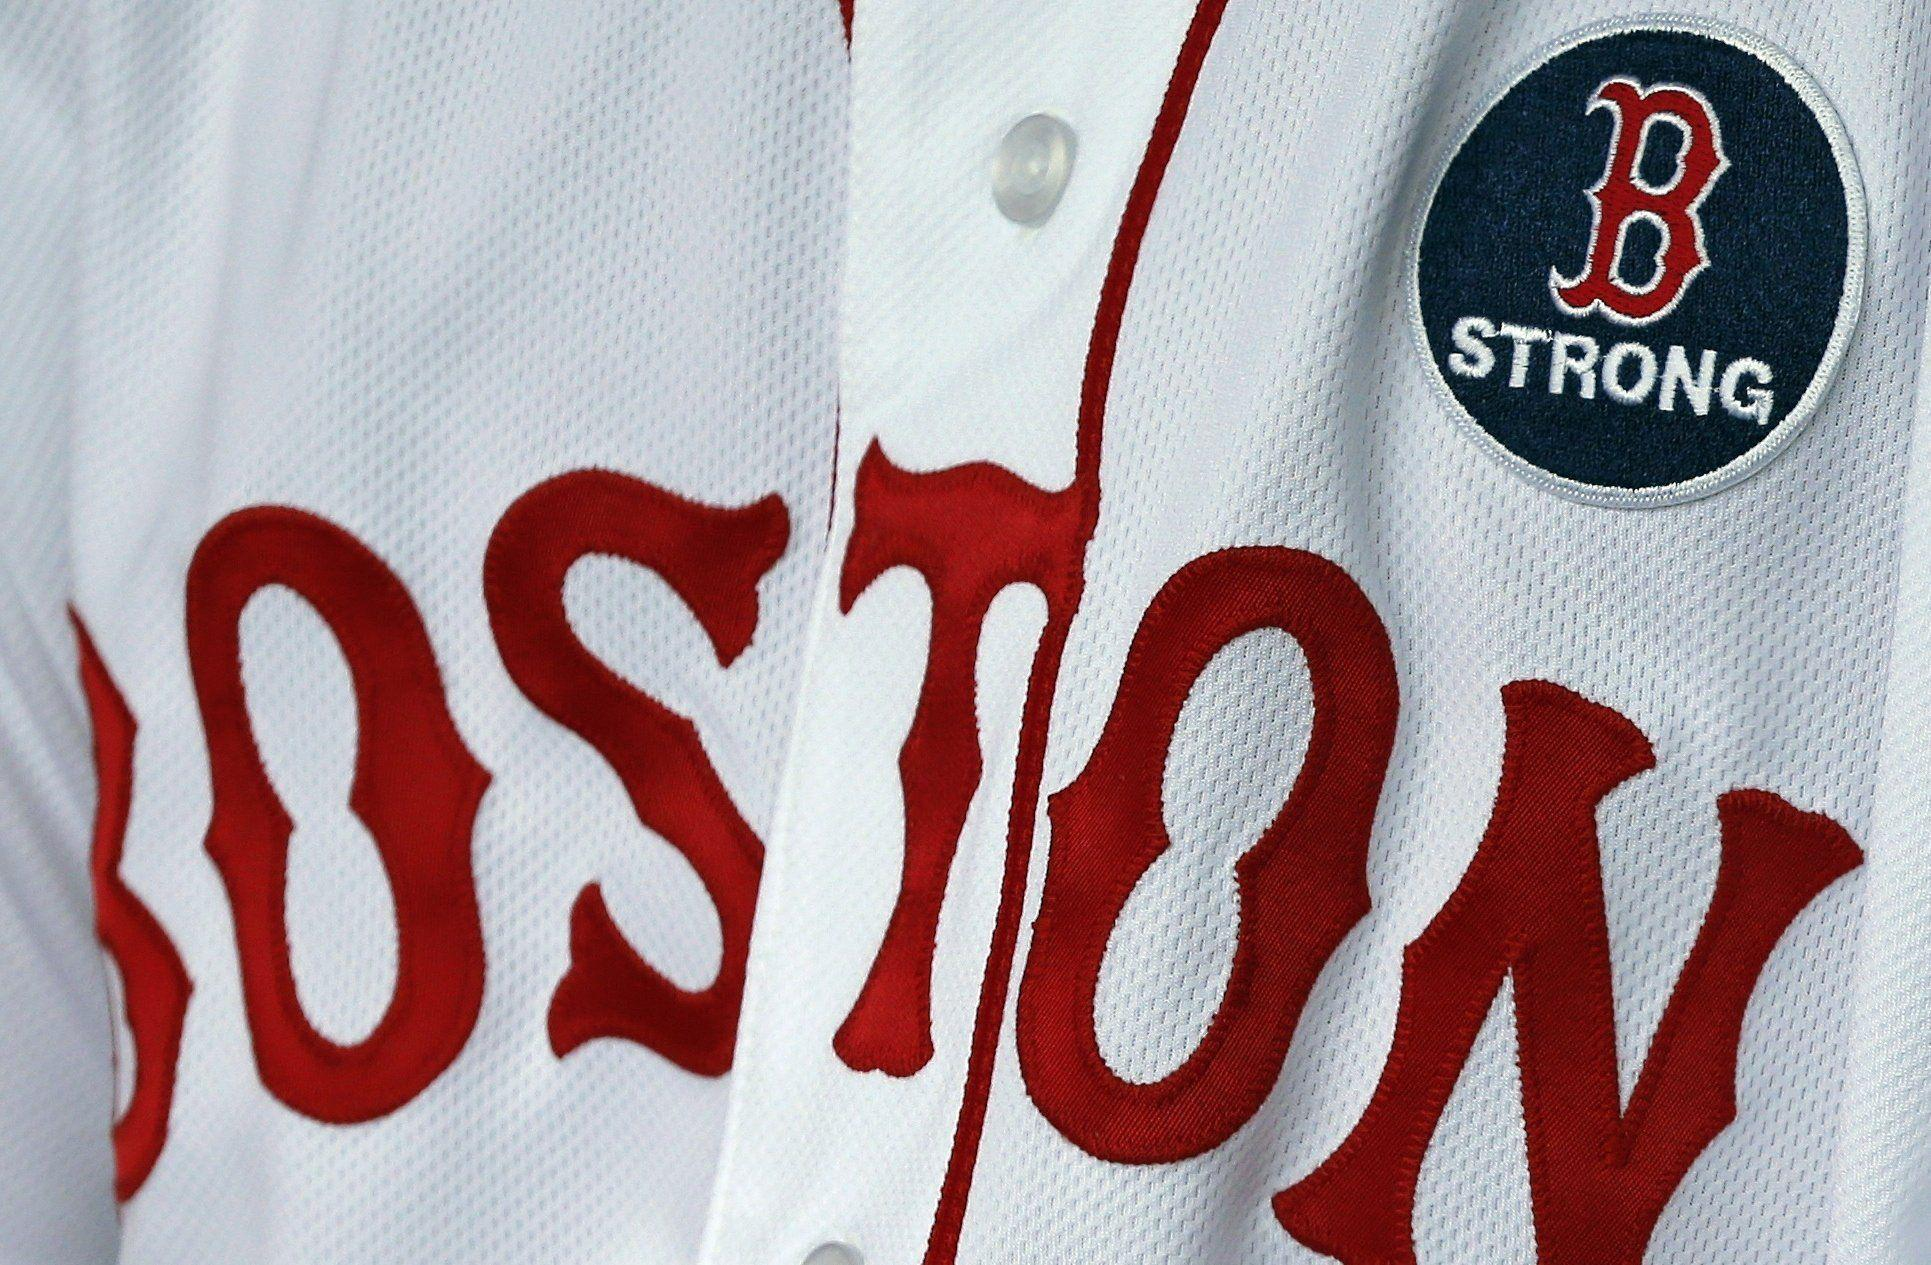 Boston Red Sox Wallpapers Images Photos Pictures Backgrounds